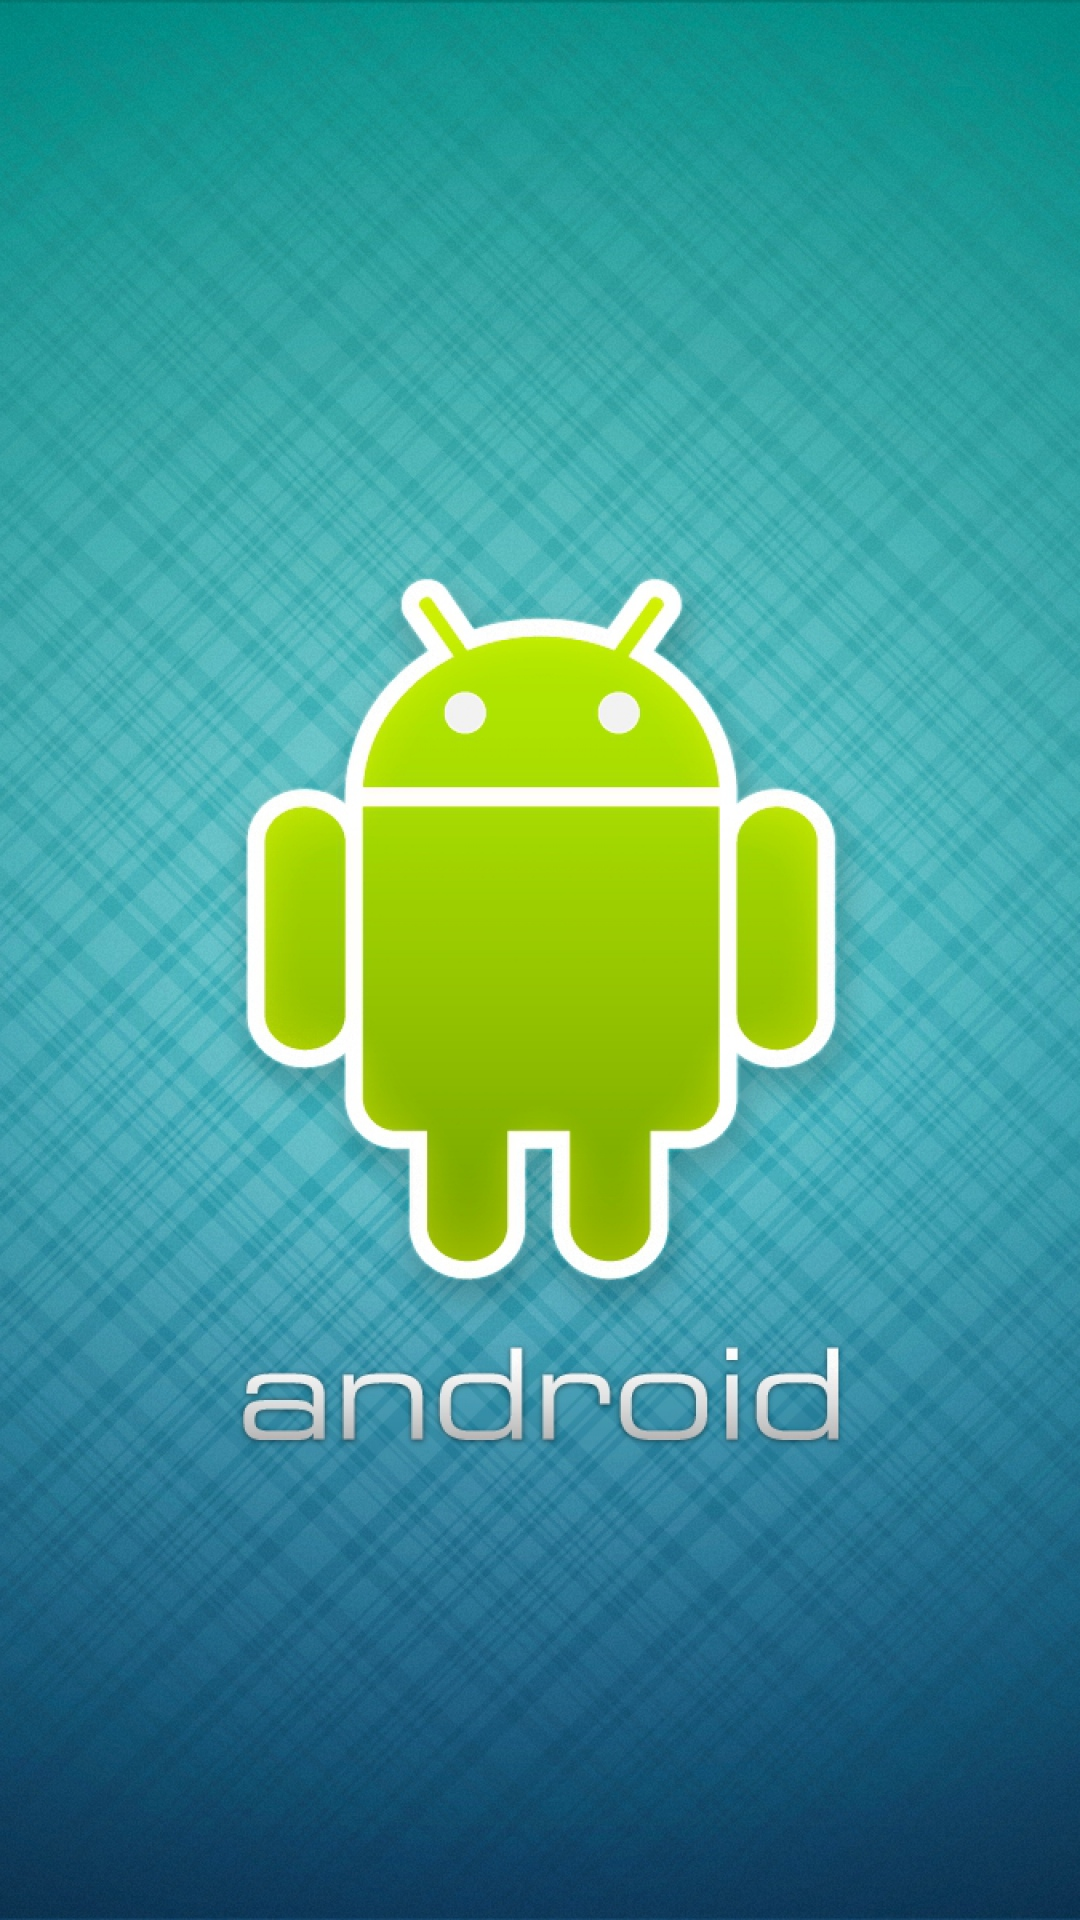 Android wallpaper best htc one wallpapers free and easy for Best home screen wallpaper for android